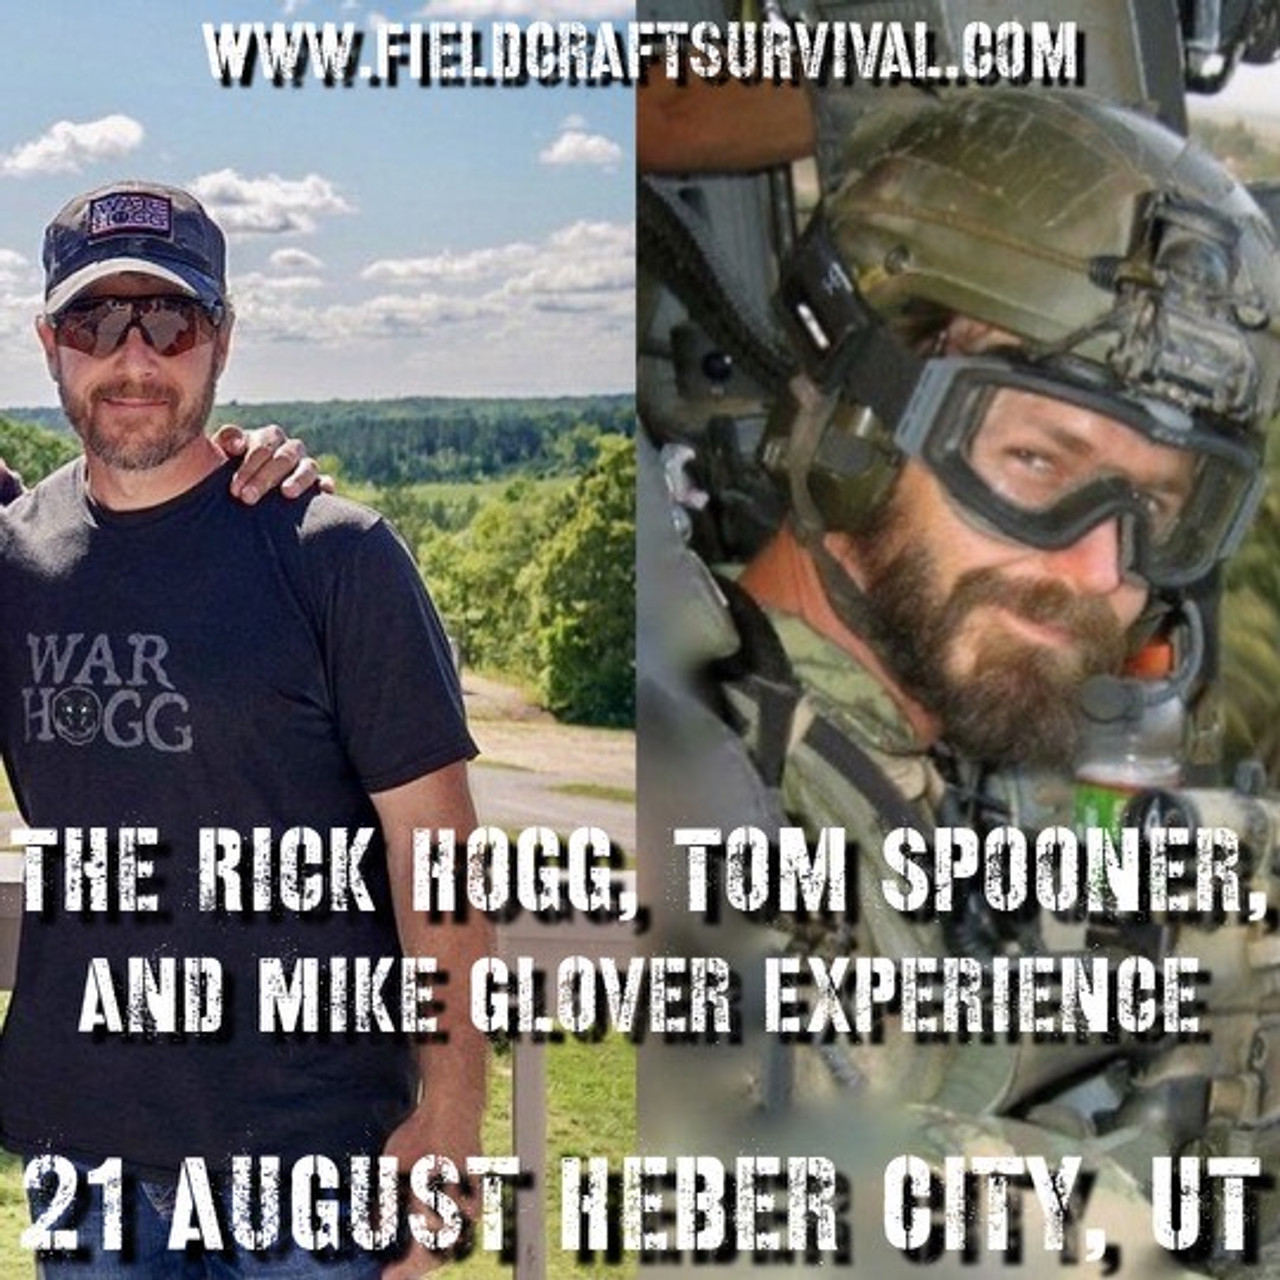 The Rick Hogg, Tom Spooner, and Mike Glover Experience: 21 August 2021 (Heber City, UT (HQ))